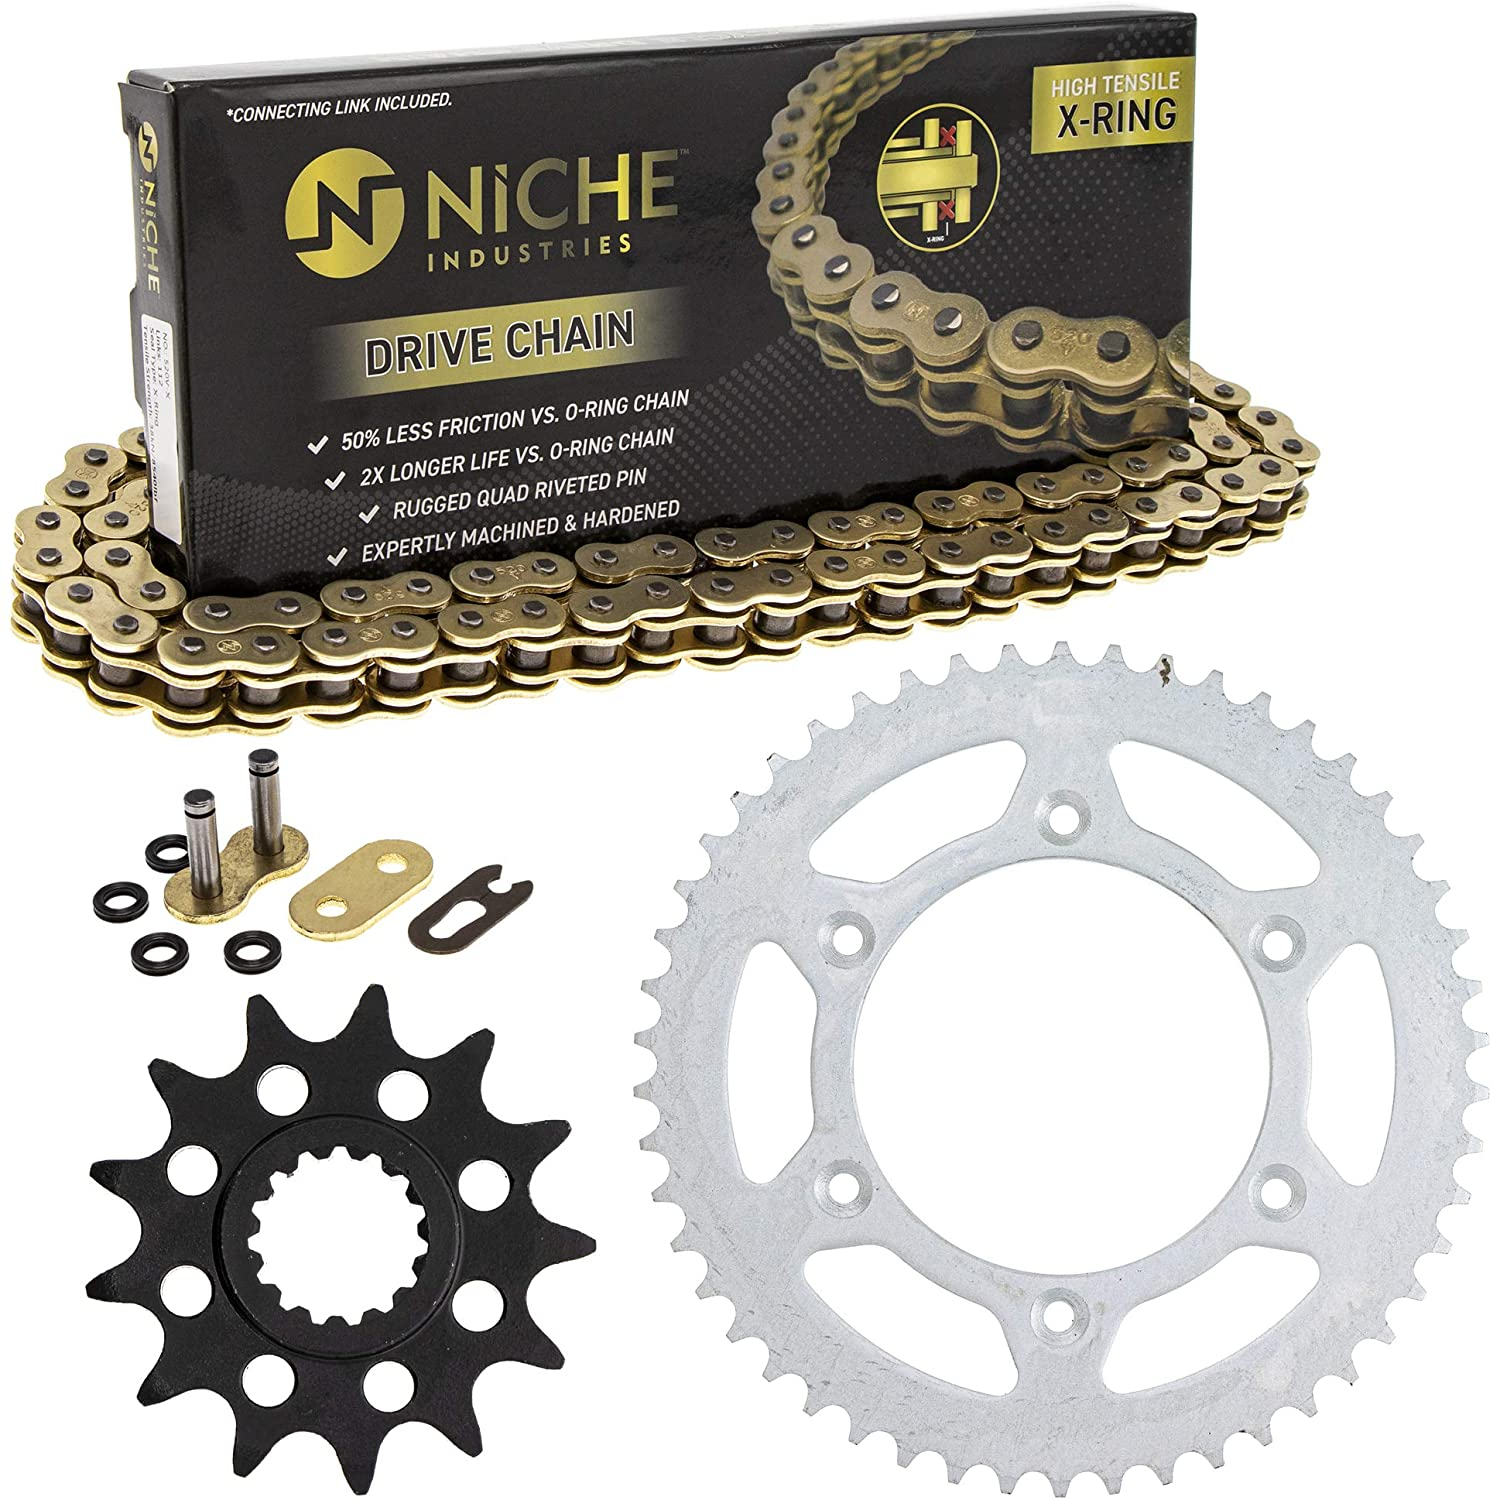 NICHE Drive Sprocket Chain Combo for KTM 250 EXC SXS 300 EXC 125 SX SXS Front 13 Rear 50 Tooth 520V-X X-Ring 118 Links